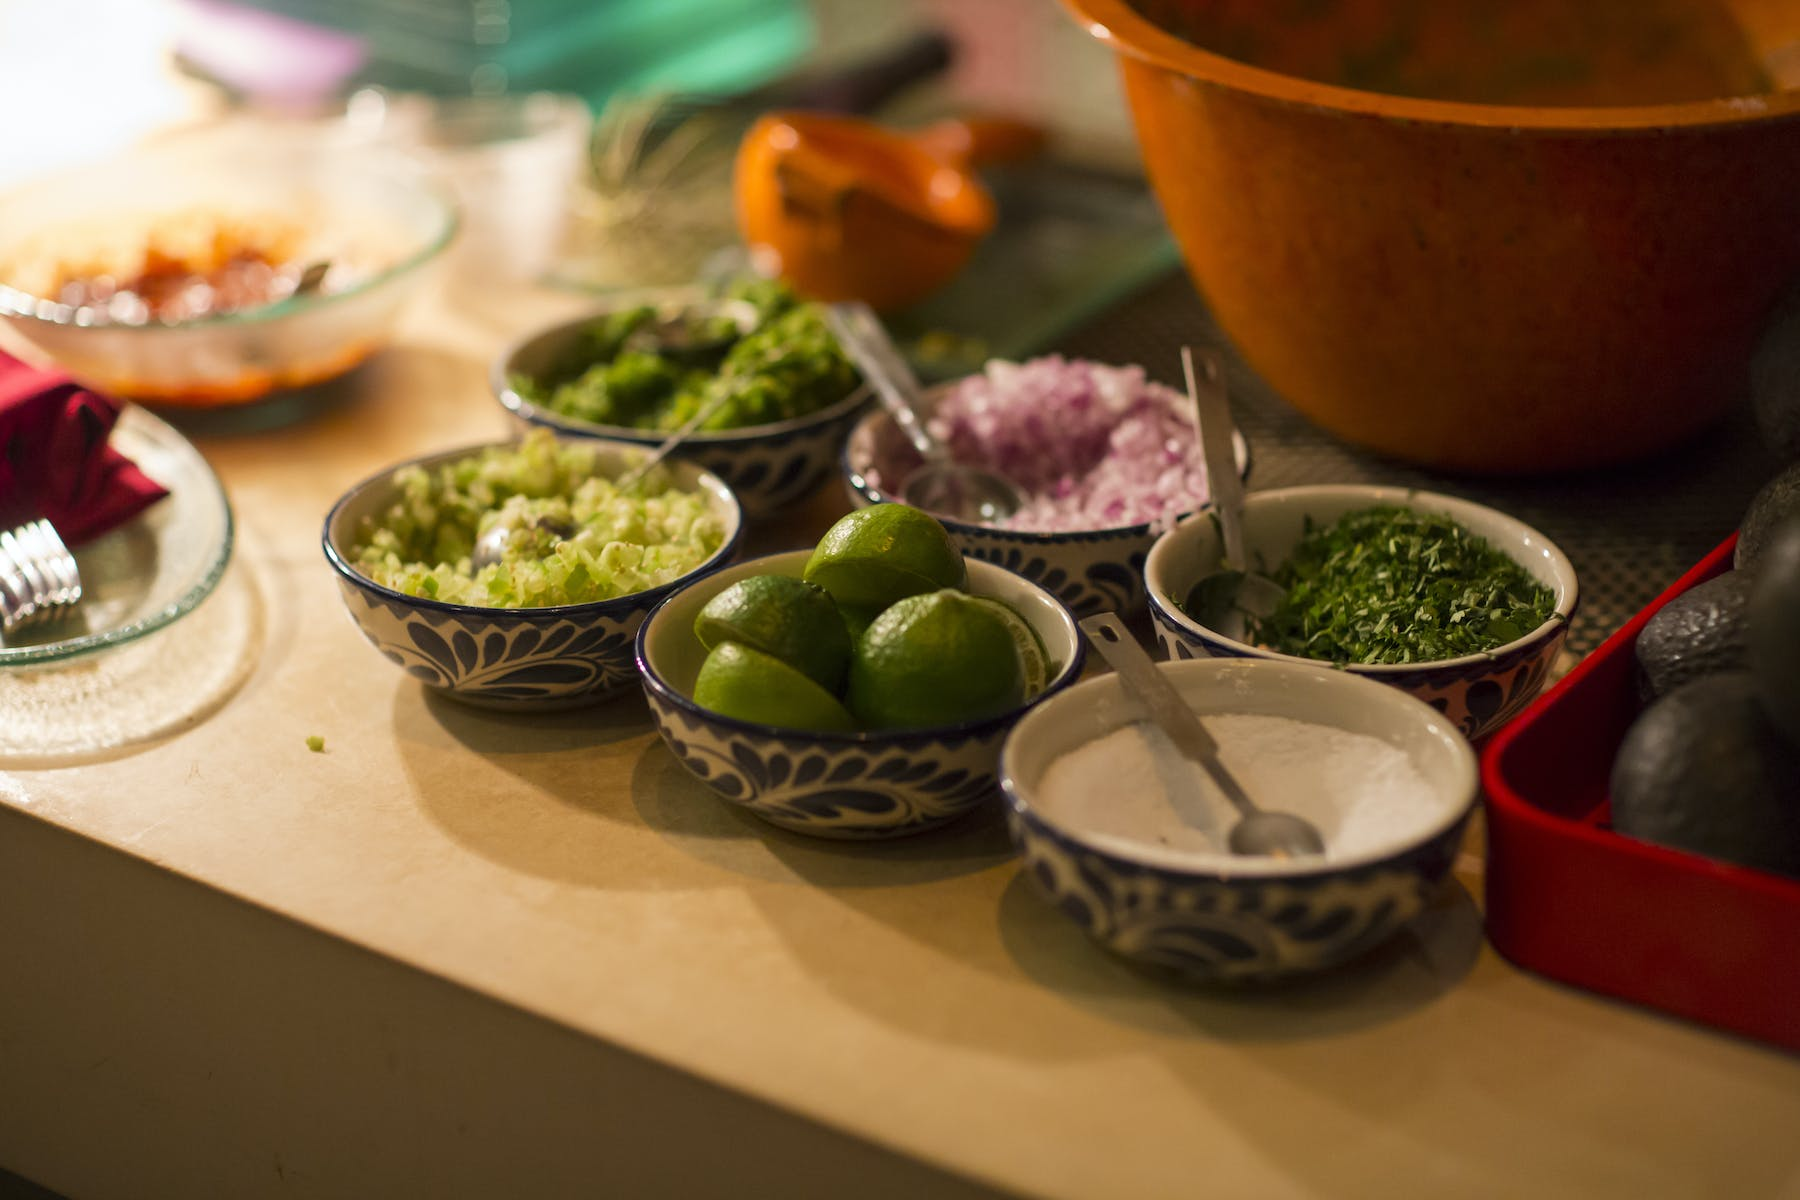 onions, lemons, sauce and cilantro in bowls on a wooden table